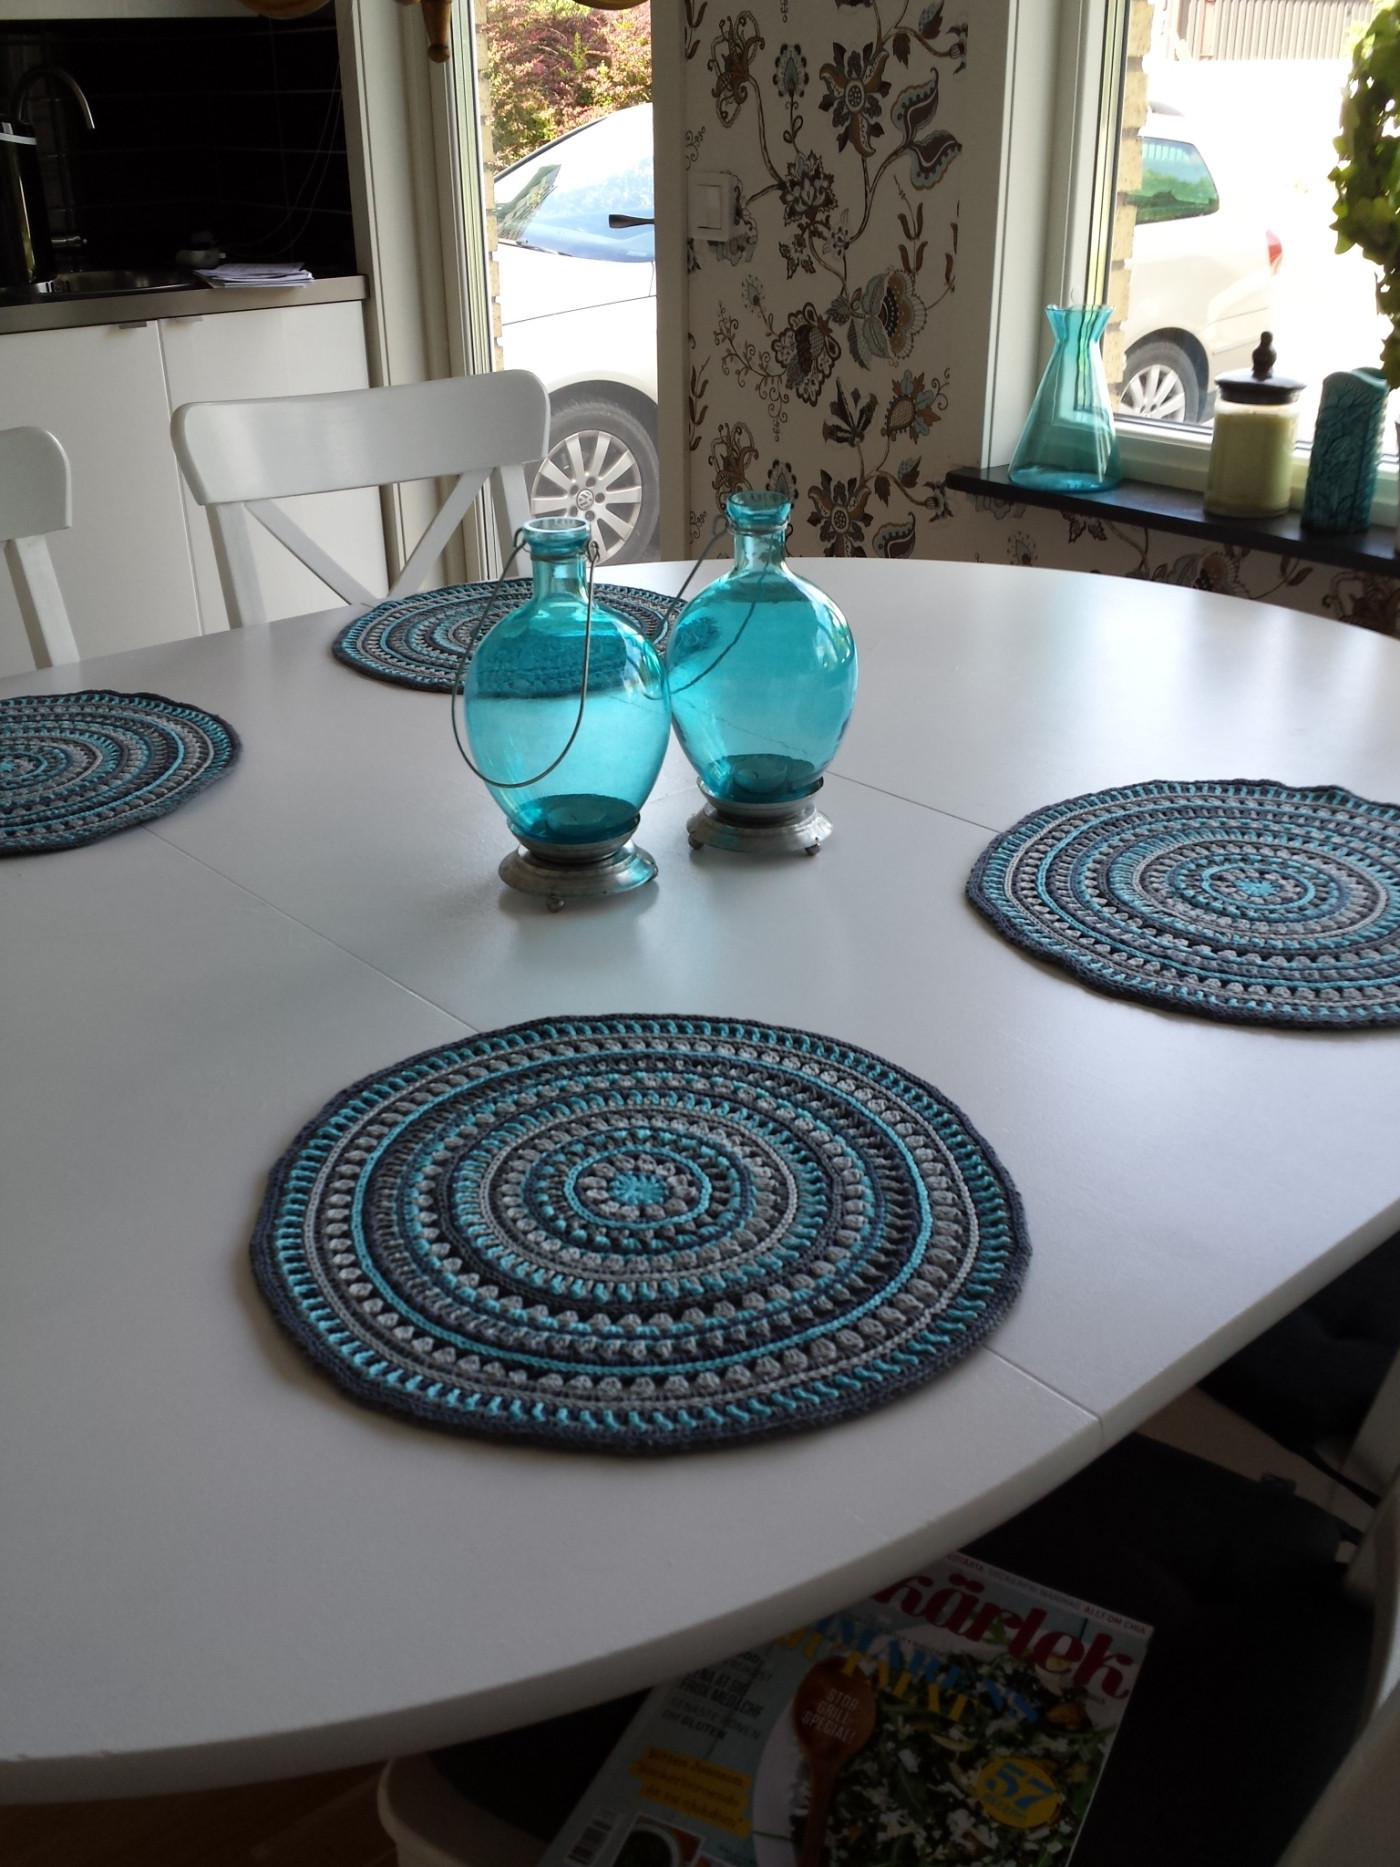 Best Of 365 Crochet Free Crochet Placemat Patterns Of Lovely 40 Pics Free Crochet Placemat Patterns